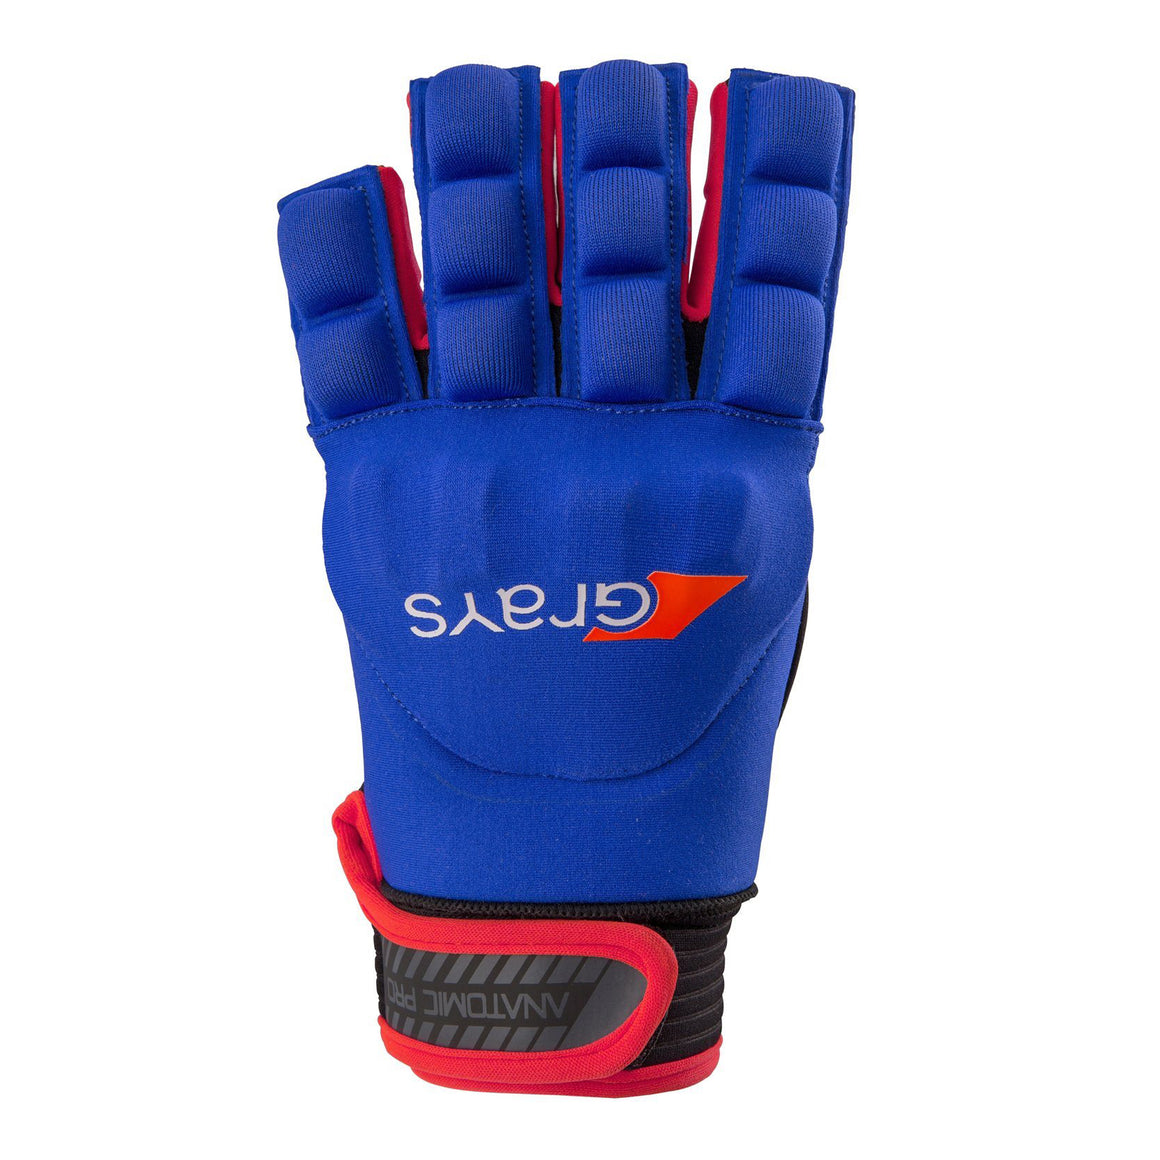 Anatomic Pro Hockey Glove for Men in Navy & Red